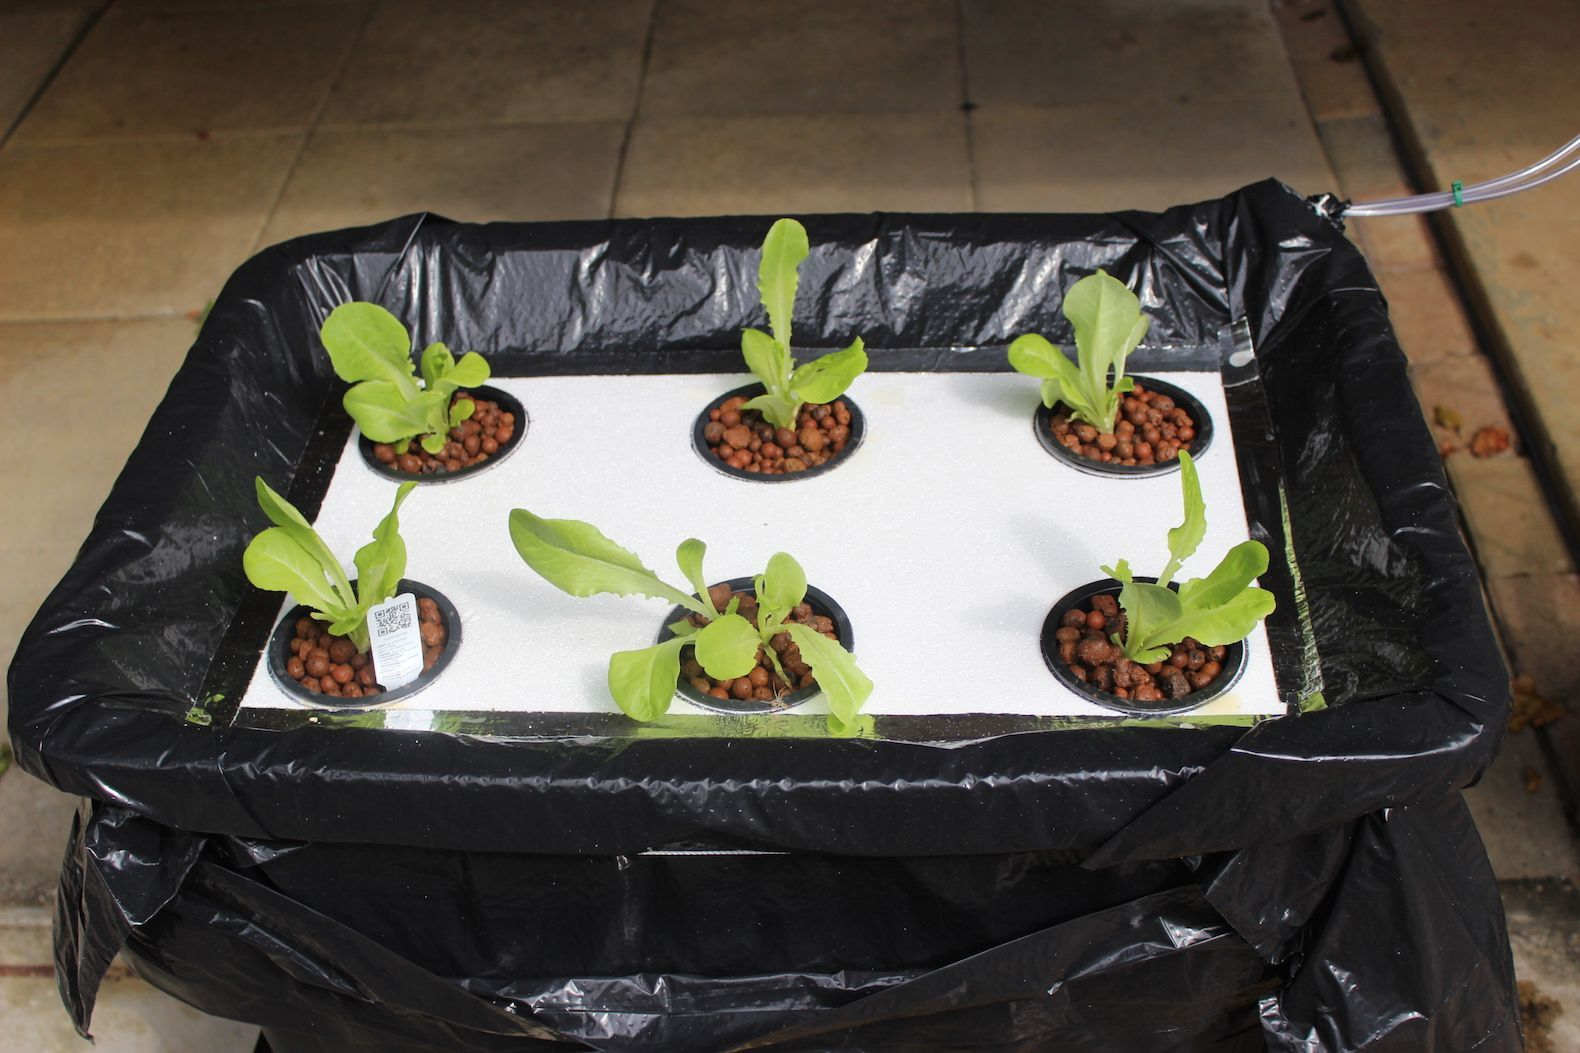 How To Build A Cheap Hydroponic Lettuce Floating Raft To Build A Cheap Hydroponic Lettuce Floating Raft